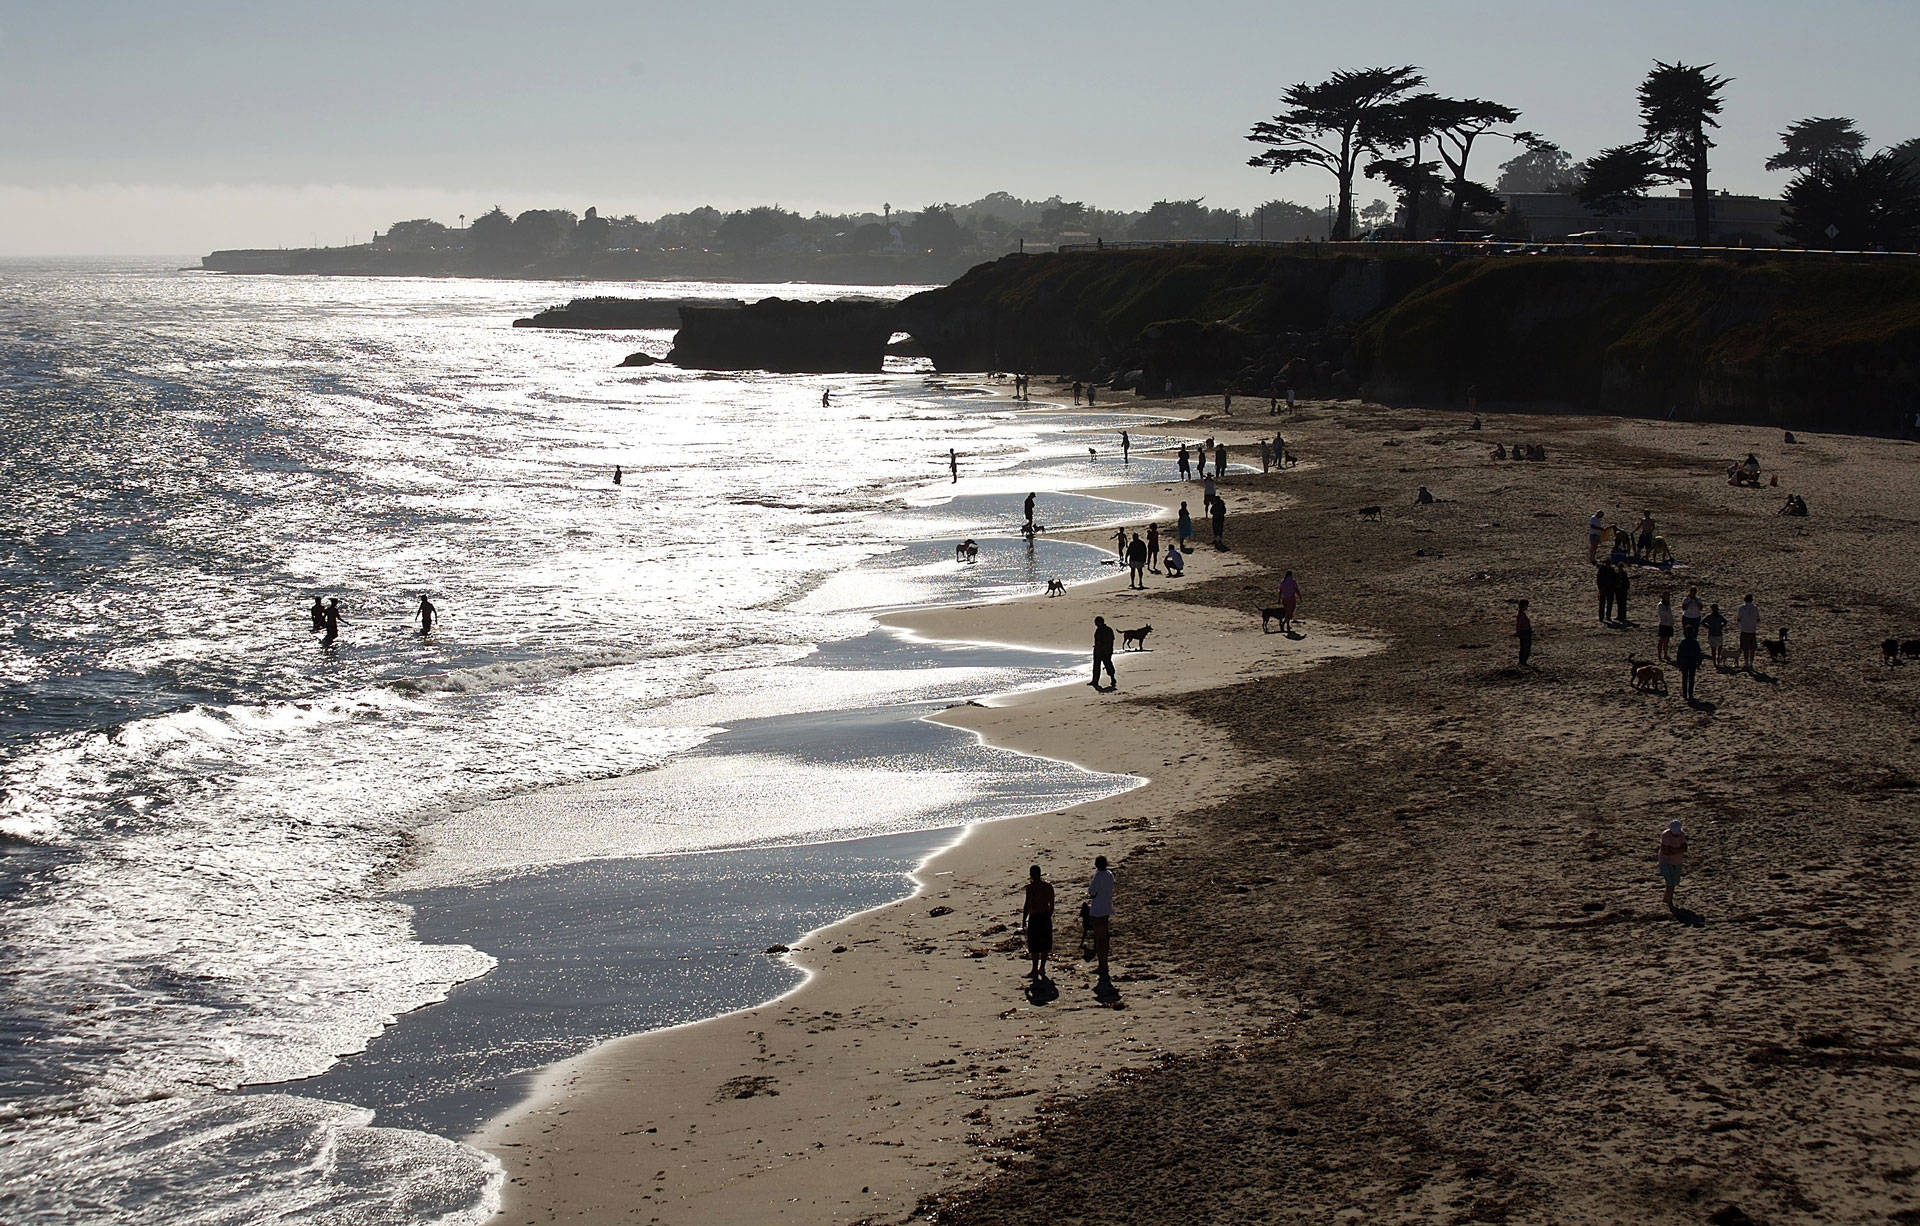 Visitors in Santa Cruz enjoy the beach below West Cliff Drive. Santa Cruz County has the second-highest poverty rate in the state, after Los Angeles. Stephen Dunn/Getty Images